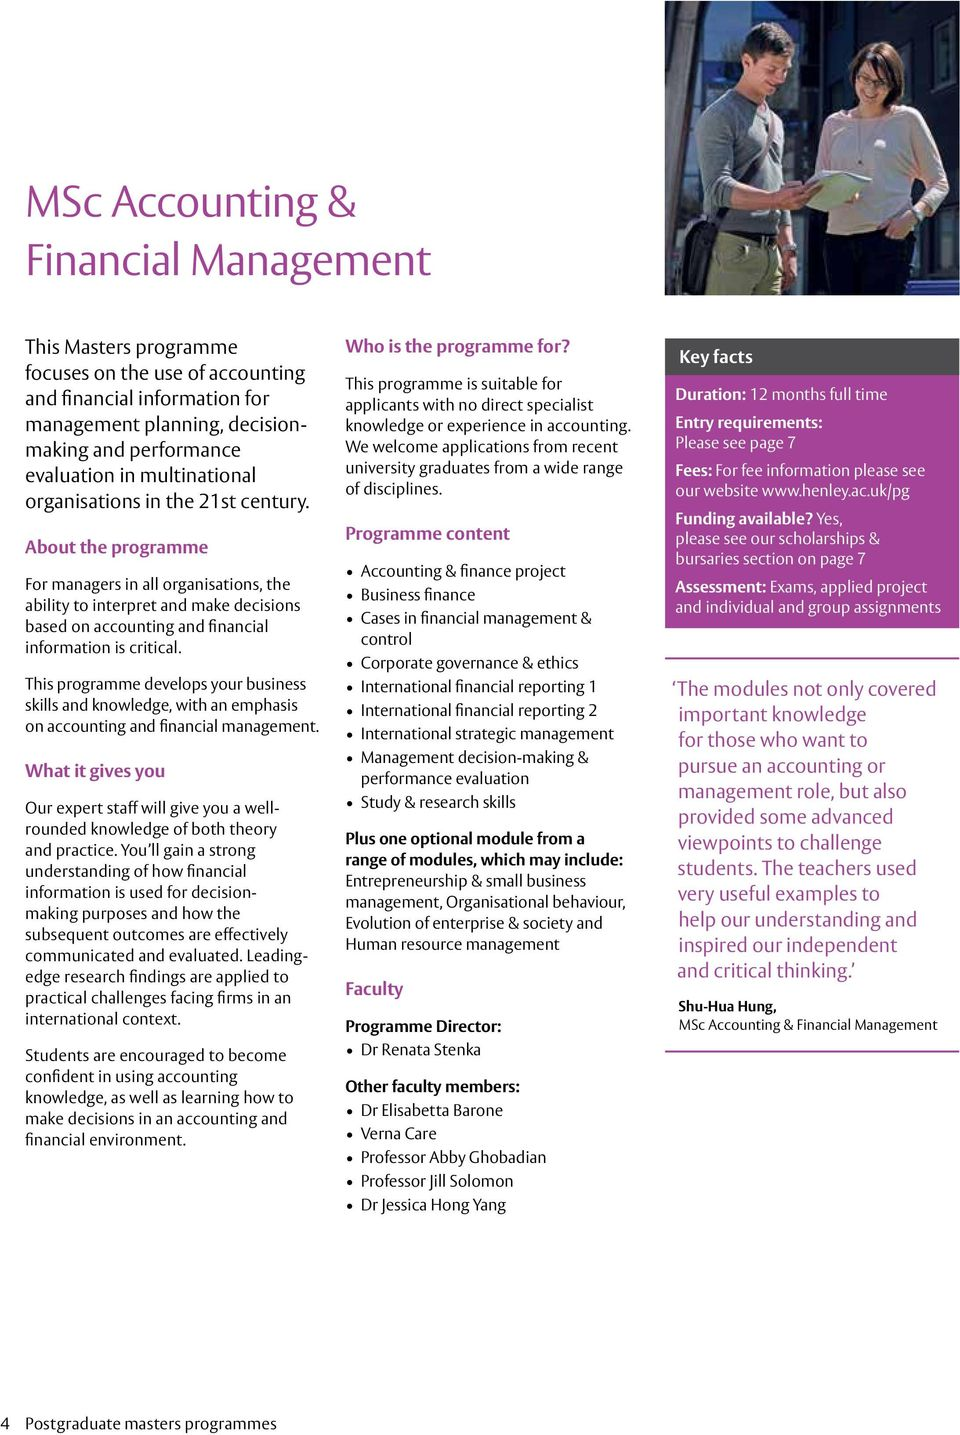 About the programme For managers in all organisations, the ability to interpret and make decisions based on accounting and financial information is critical.